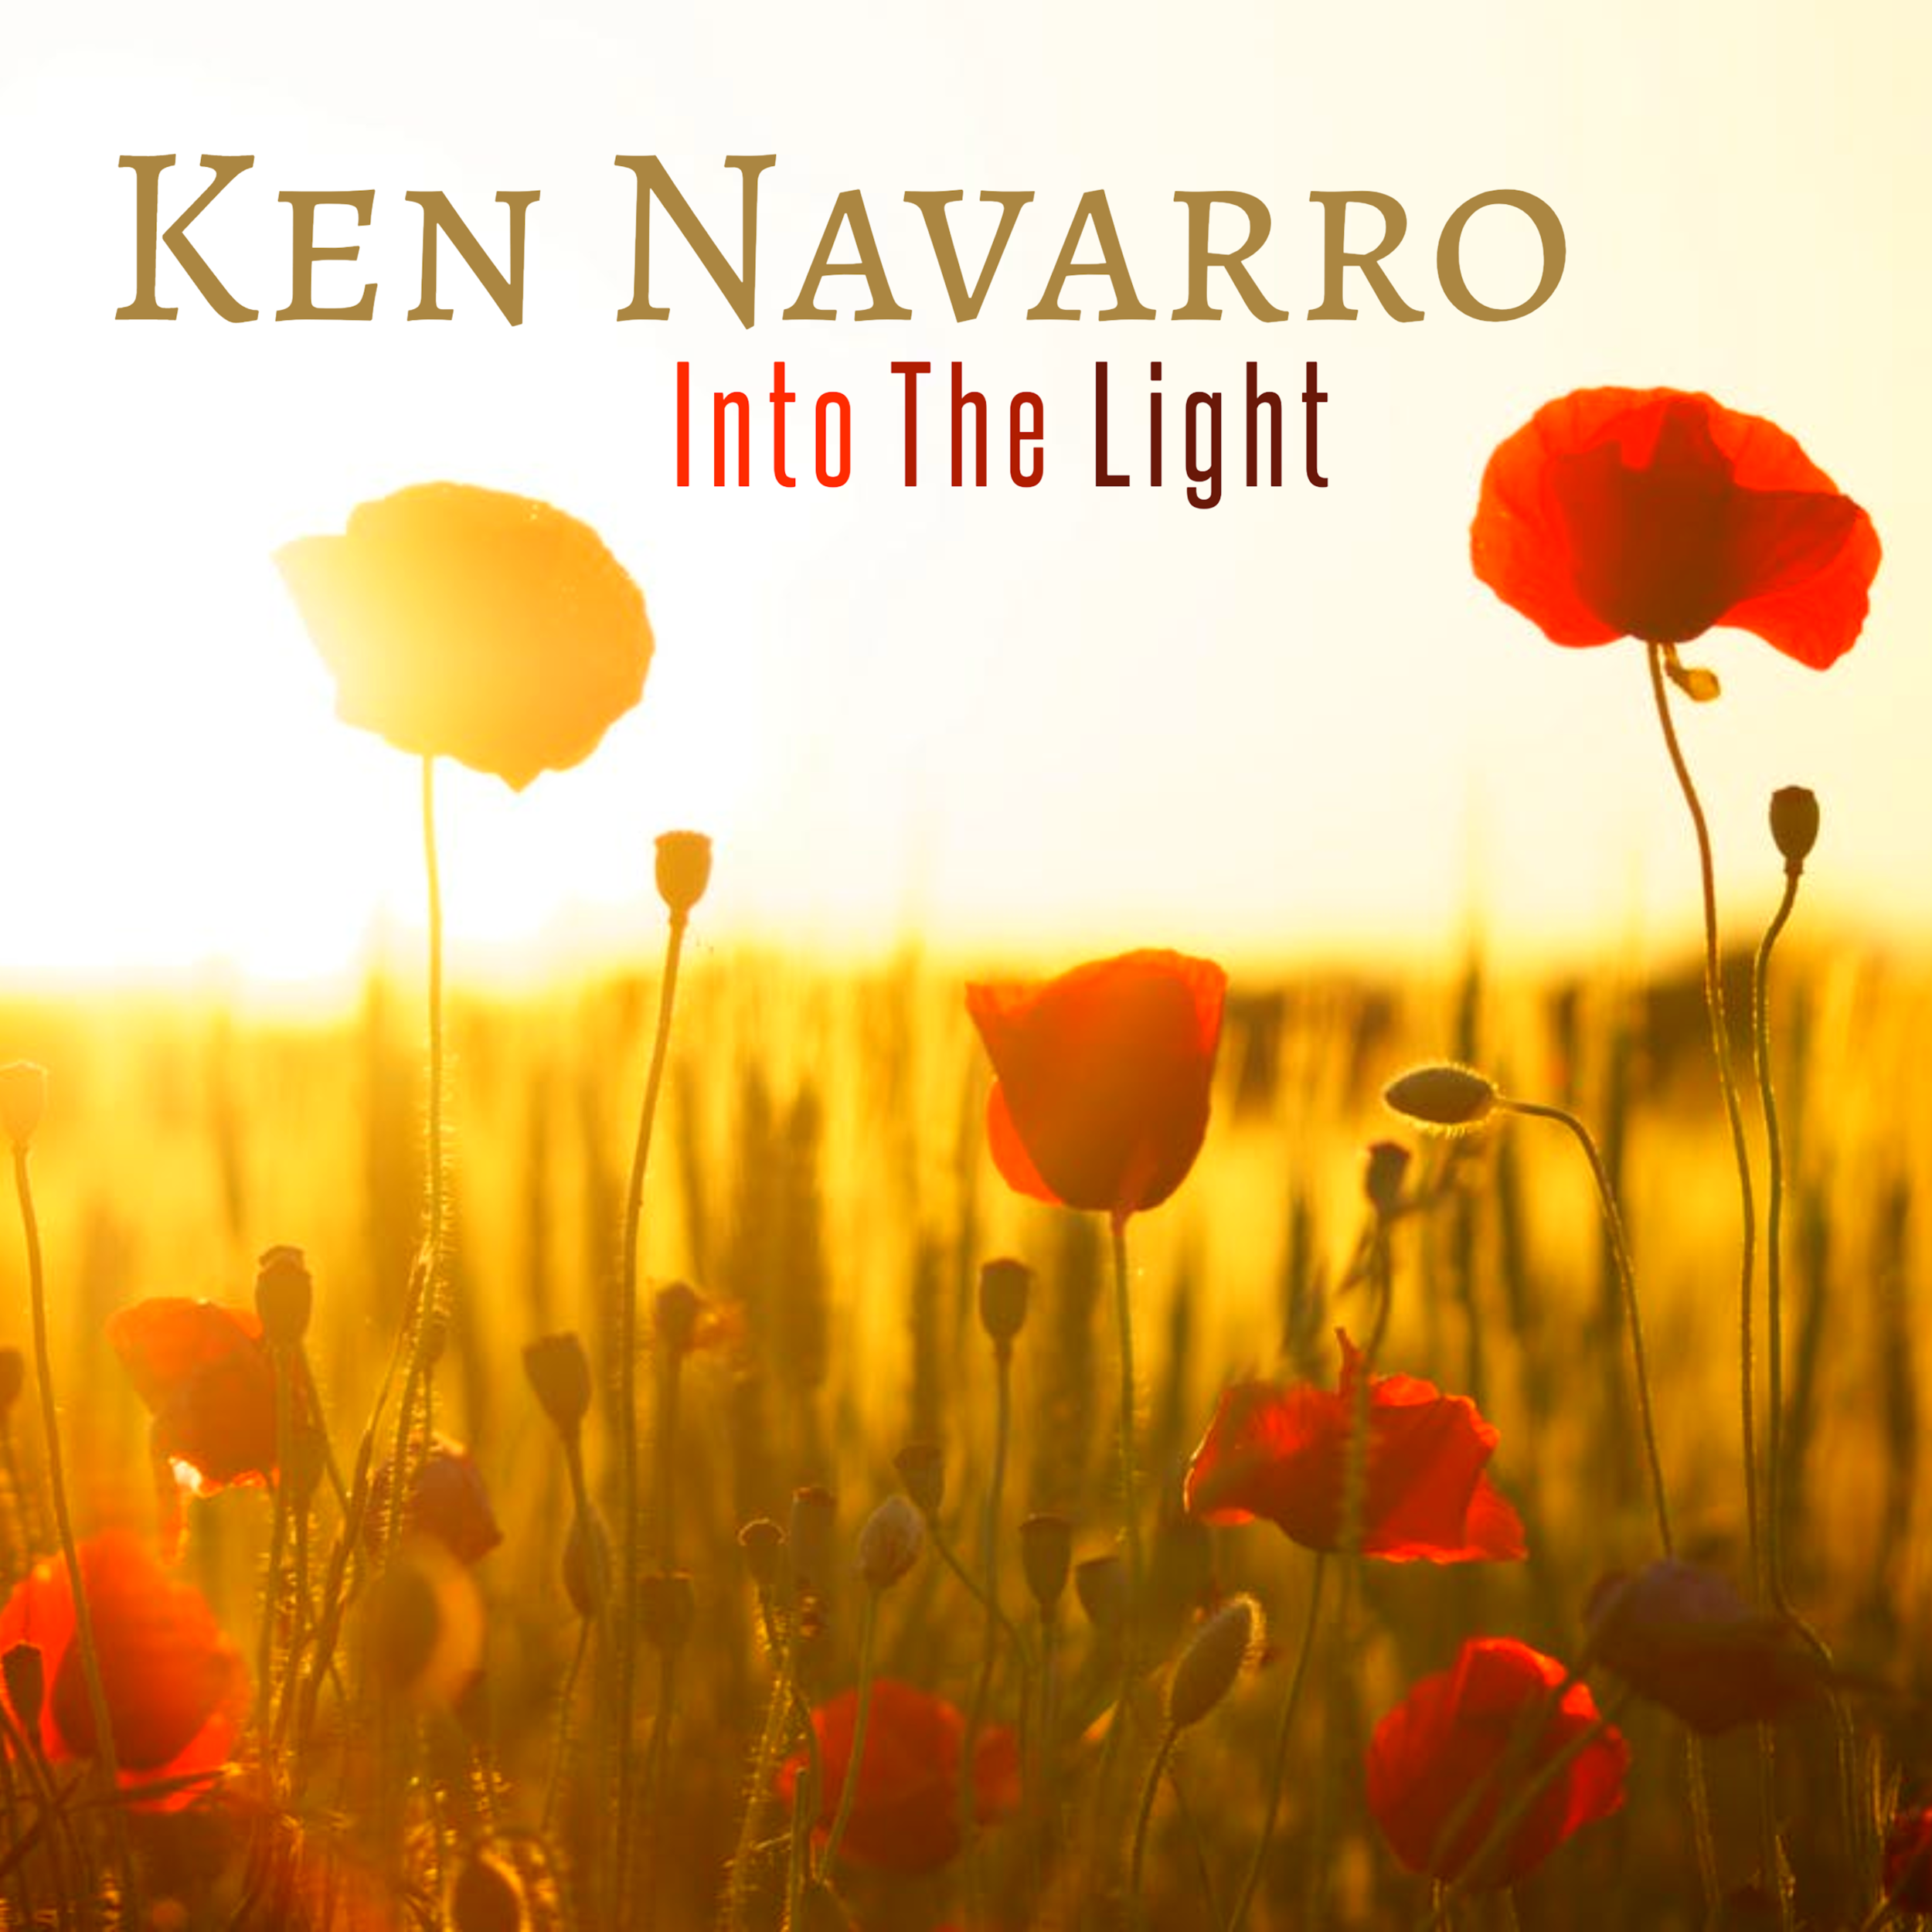 Ken Navarro Into The Light Cover Final.png